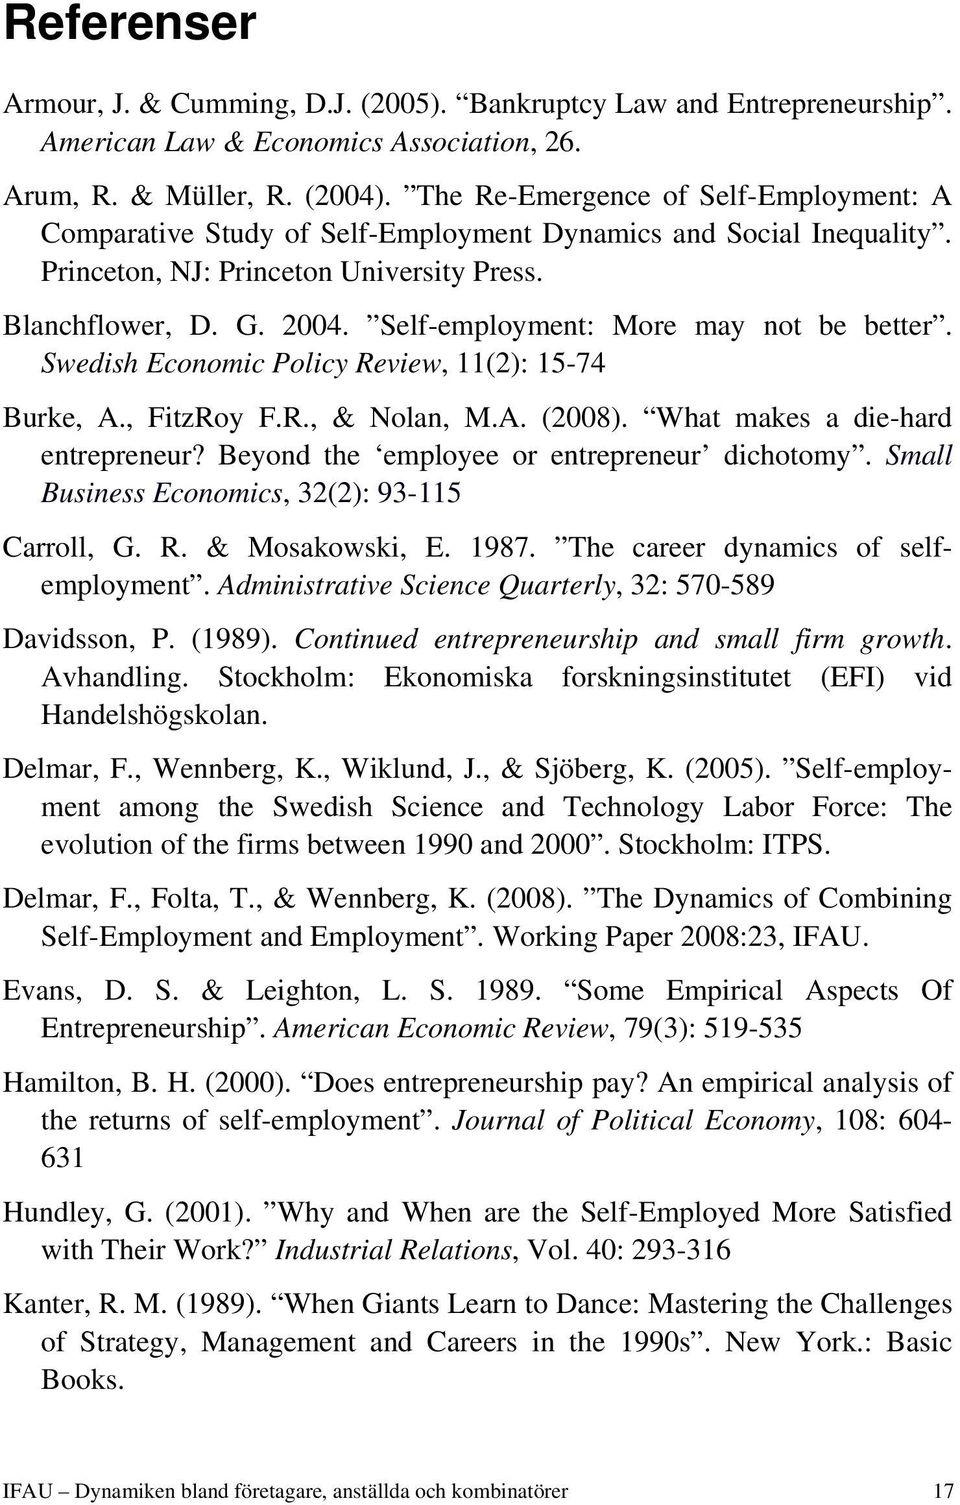 Self-employment: More may not be better. Swedish Economic Policy Review, 11(2): 15-74 Burke, A., FitzRoy F.R., & Nolan, M.A. (2008). What makes a die-hard entrepreneur?